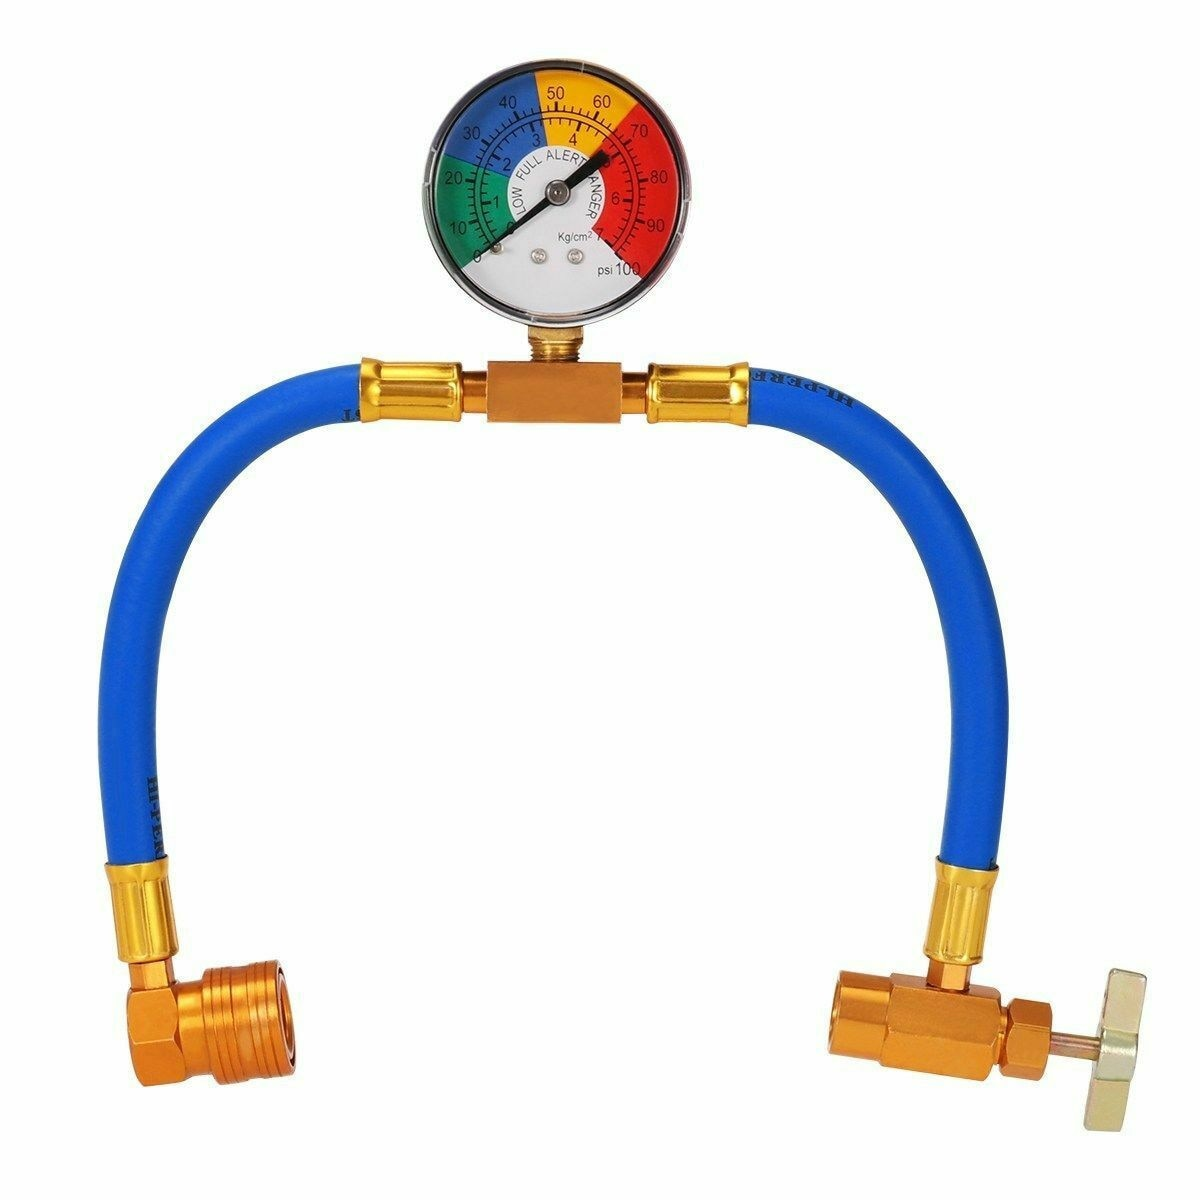 practical r134a to r12 r22 refrigerant recharge hose pipe Car Air Conditioning Refrigerant Recharge Measuring Kit Hose Gas Gauge R134a